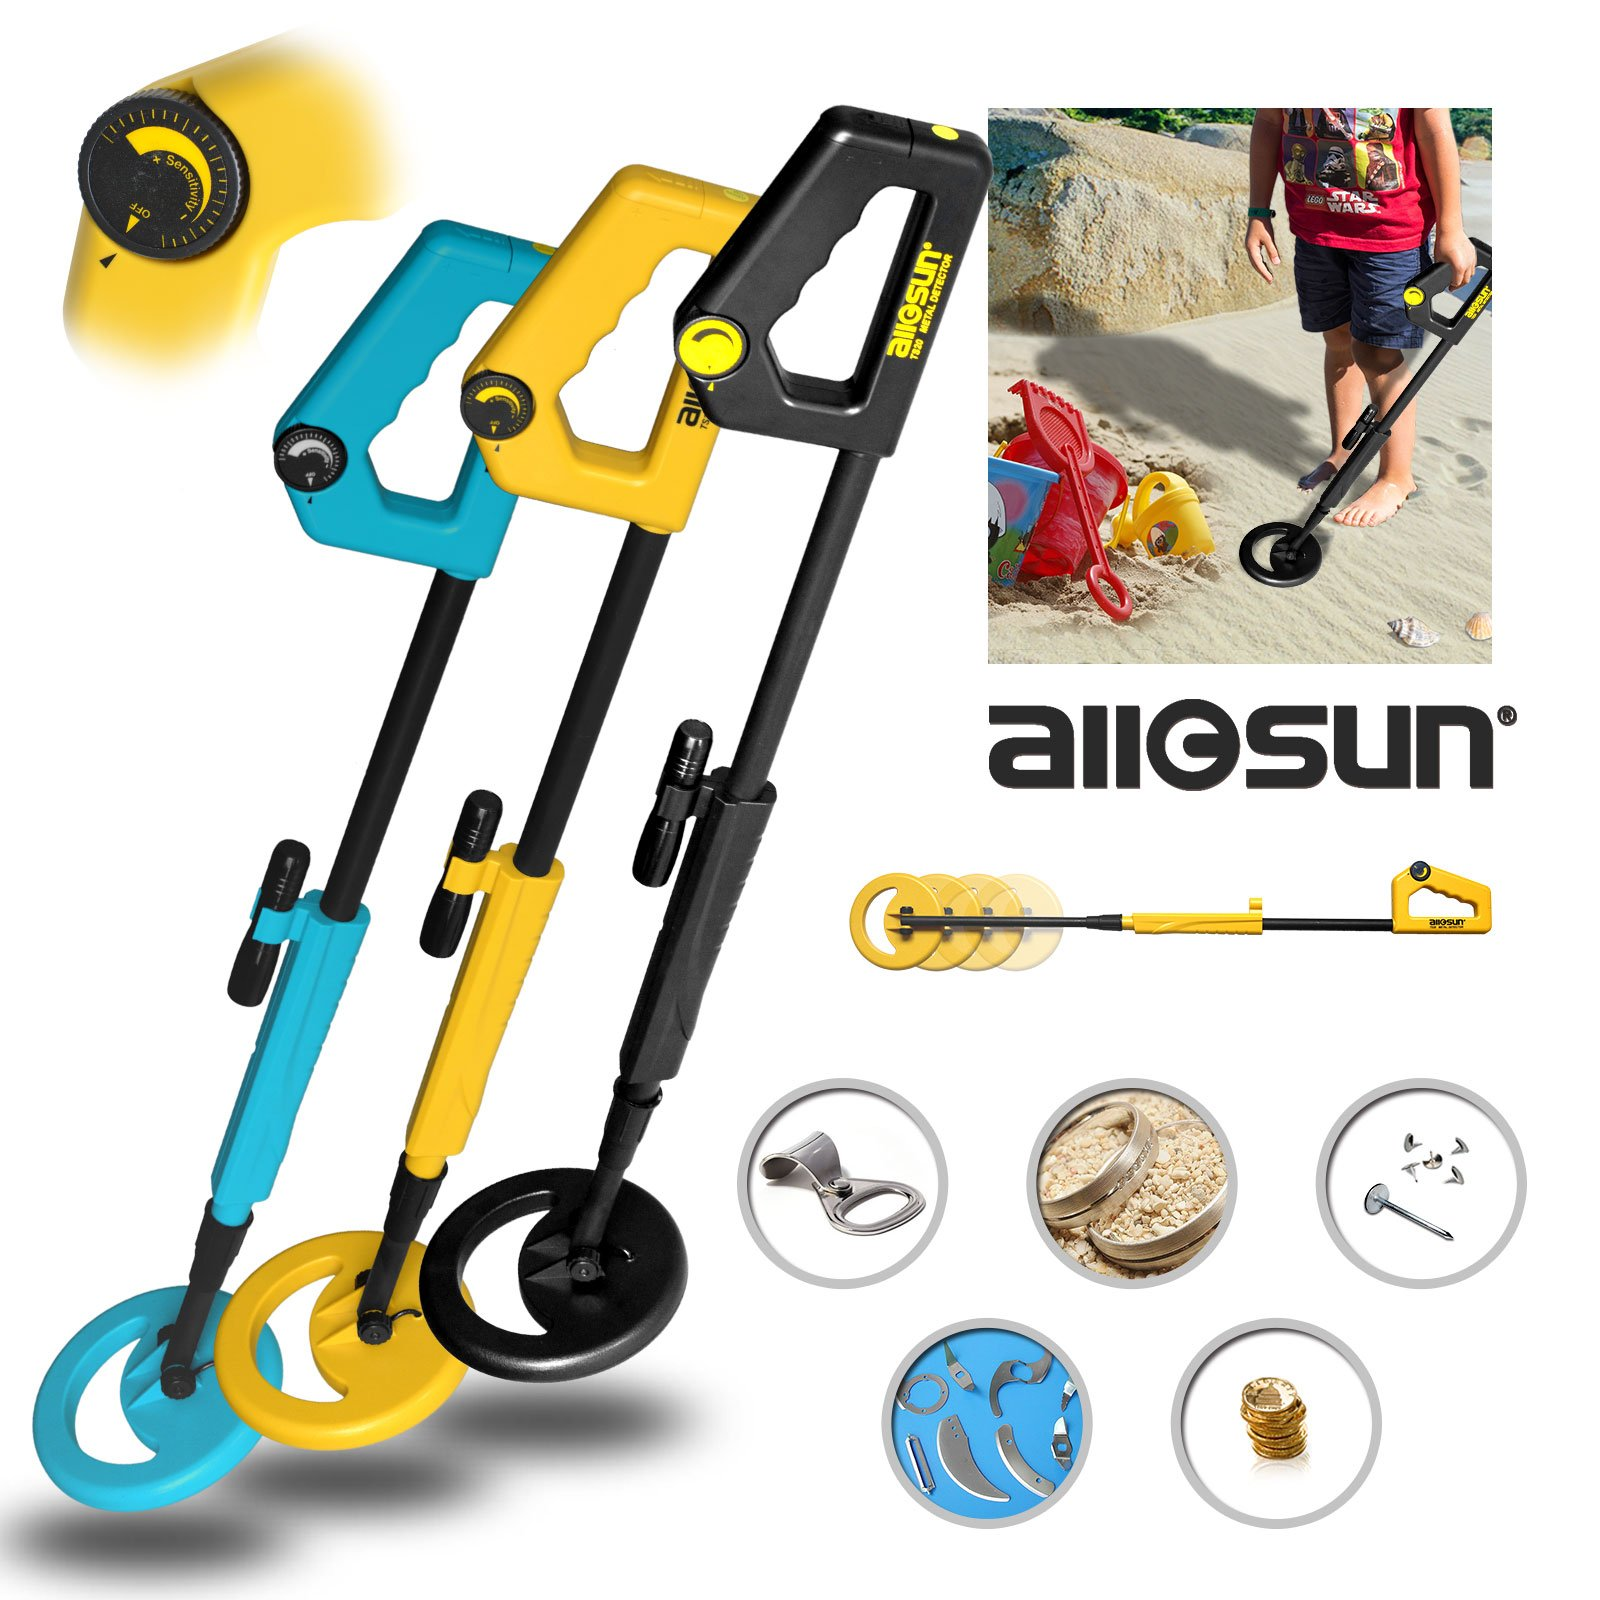 all-sun TS20AHUANG Junior Metal Detector for ChildrenYellow